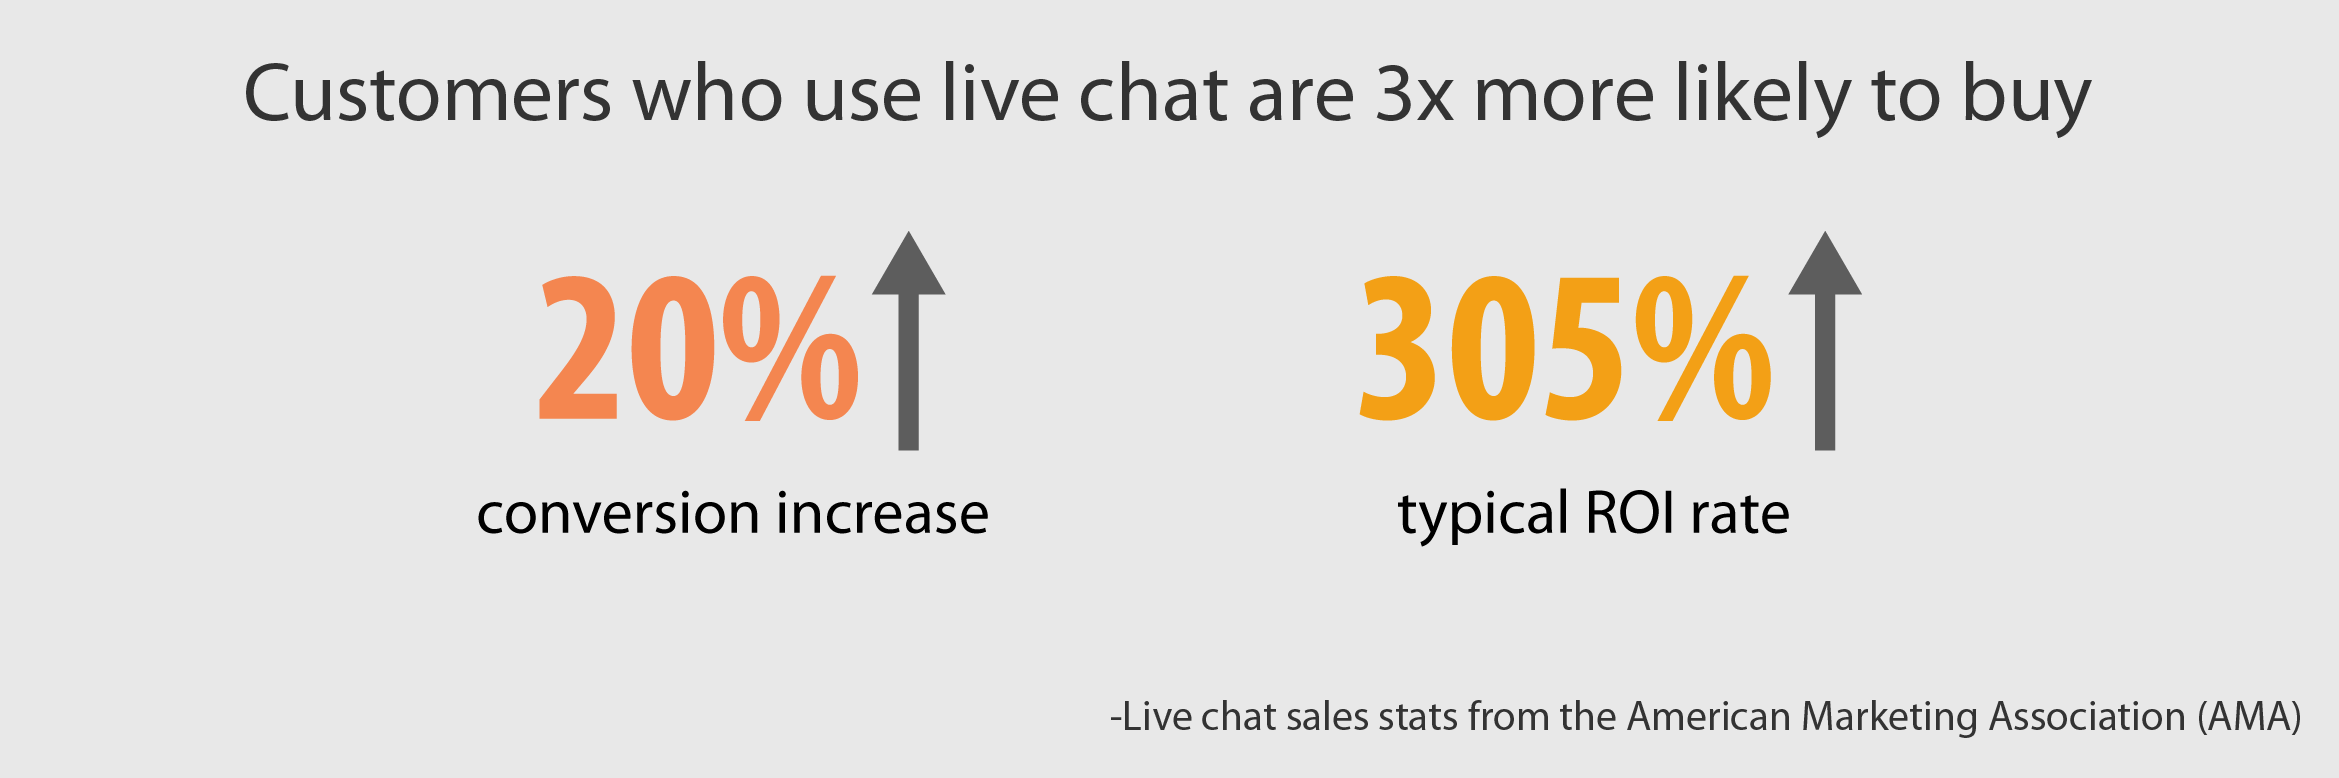 Live chat stats from the American Marketing Association